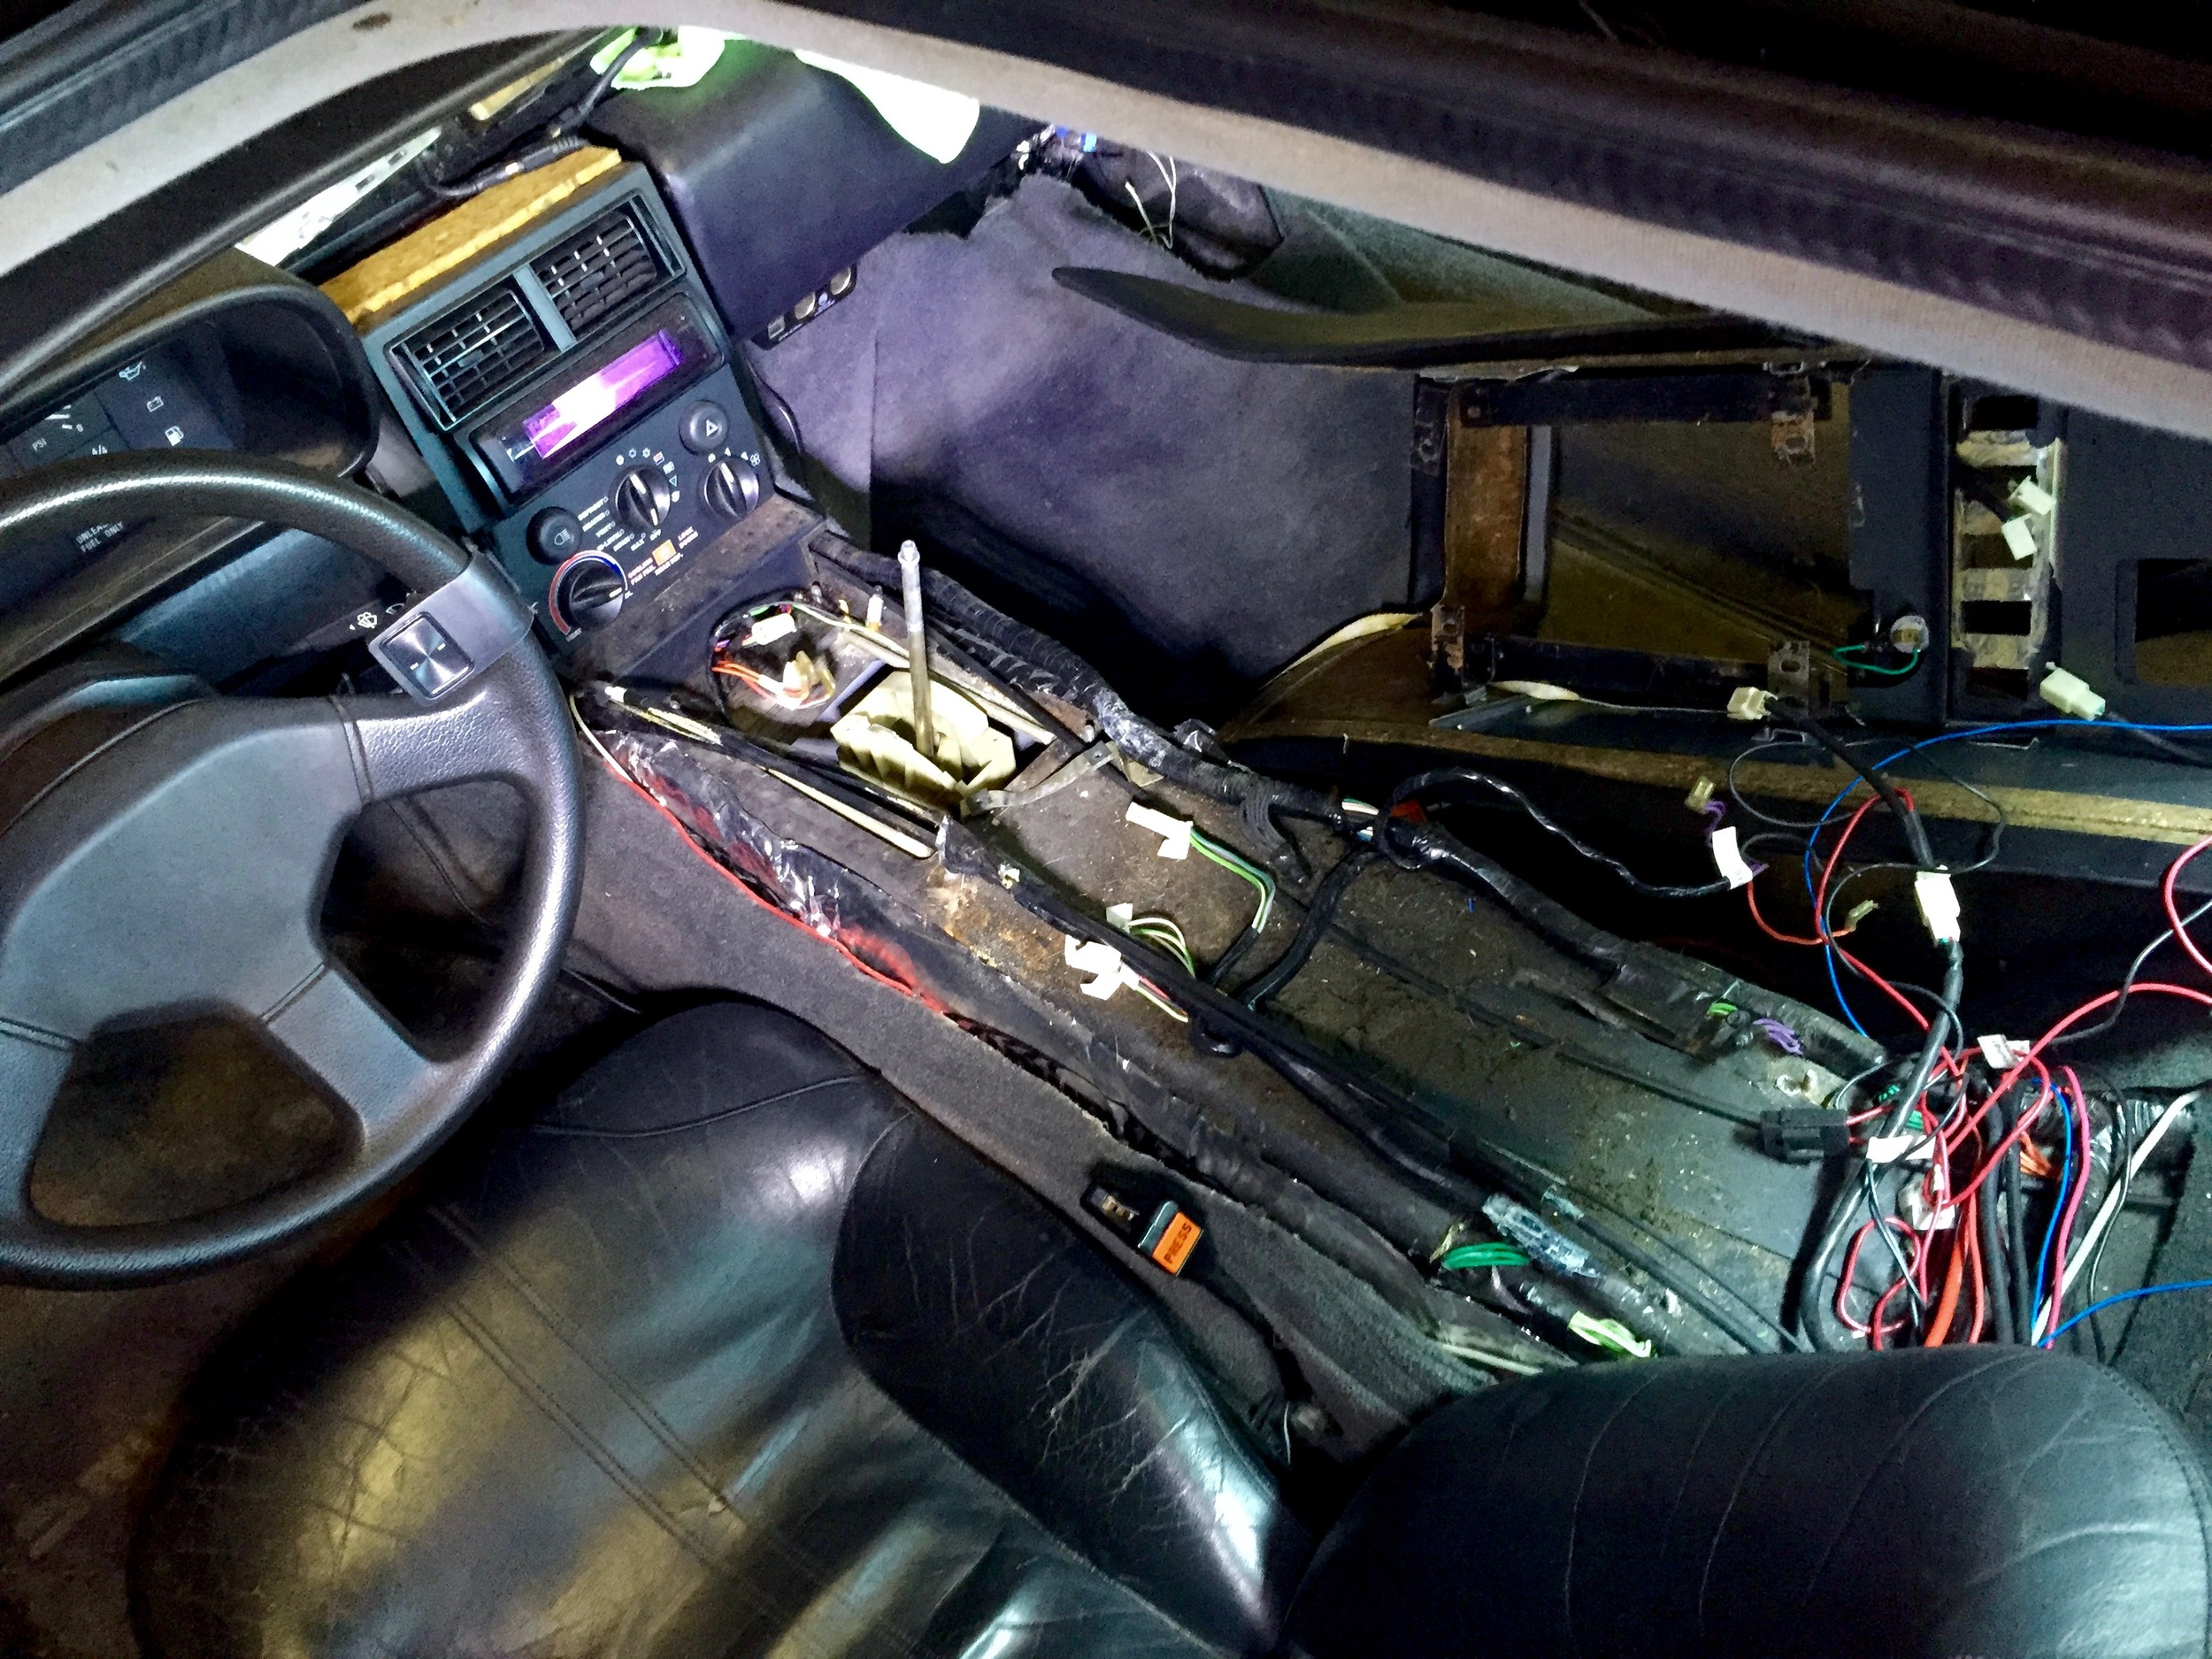 The center armrest completely removed from the car. You an clearly see where the wiring harnesses run on either side of the armrest.